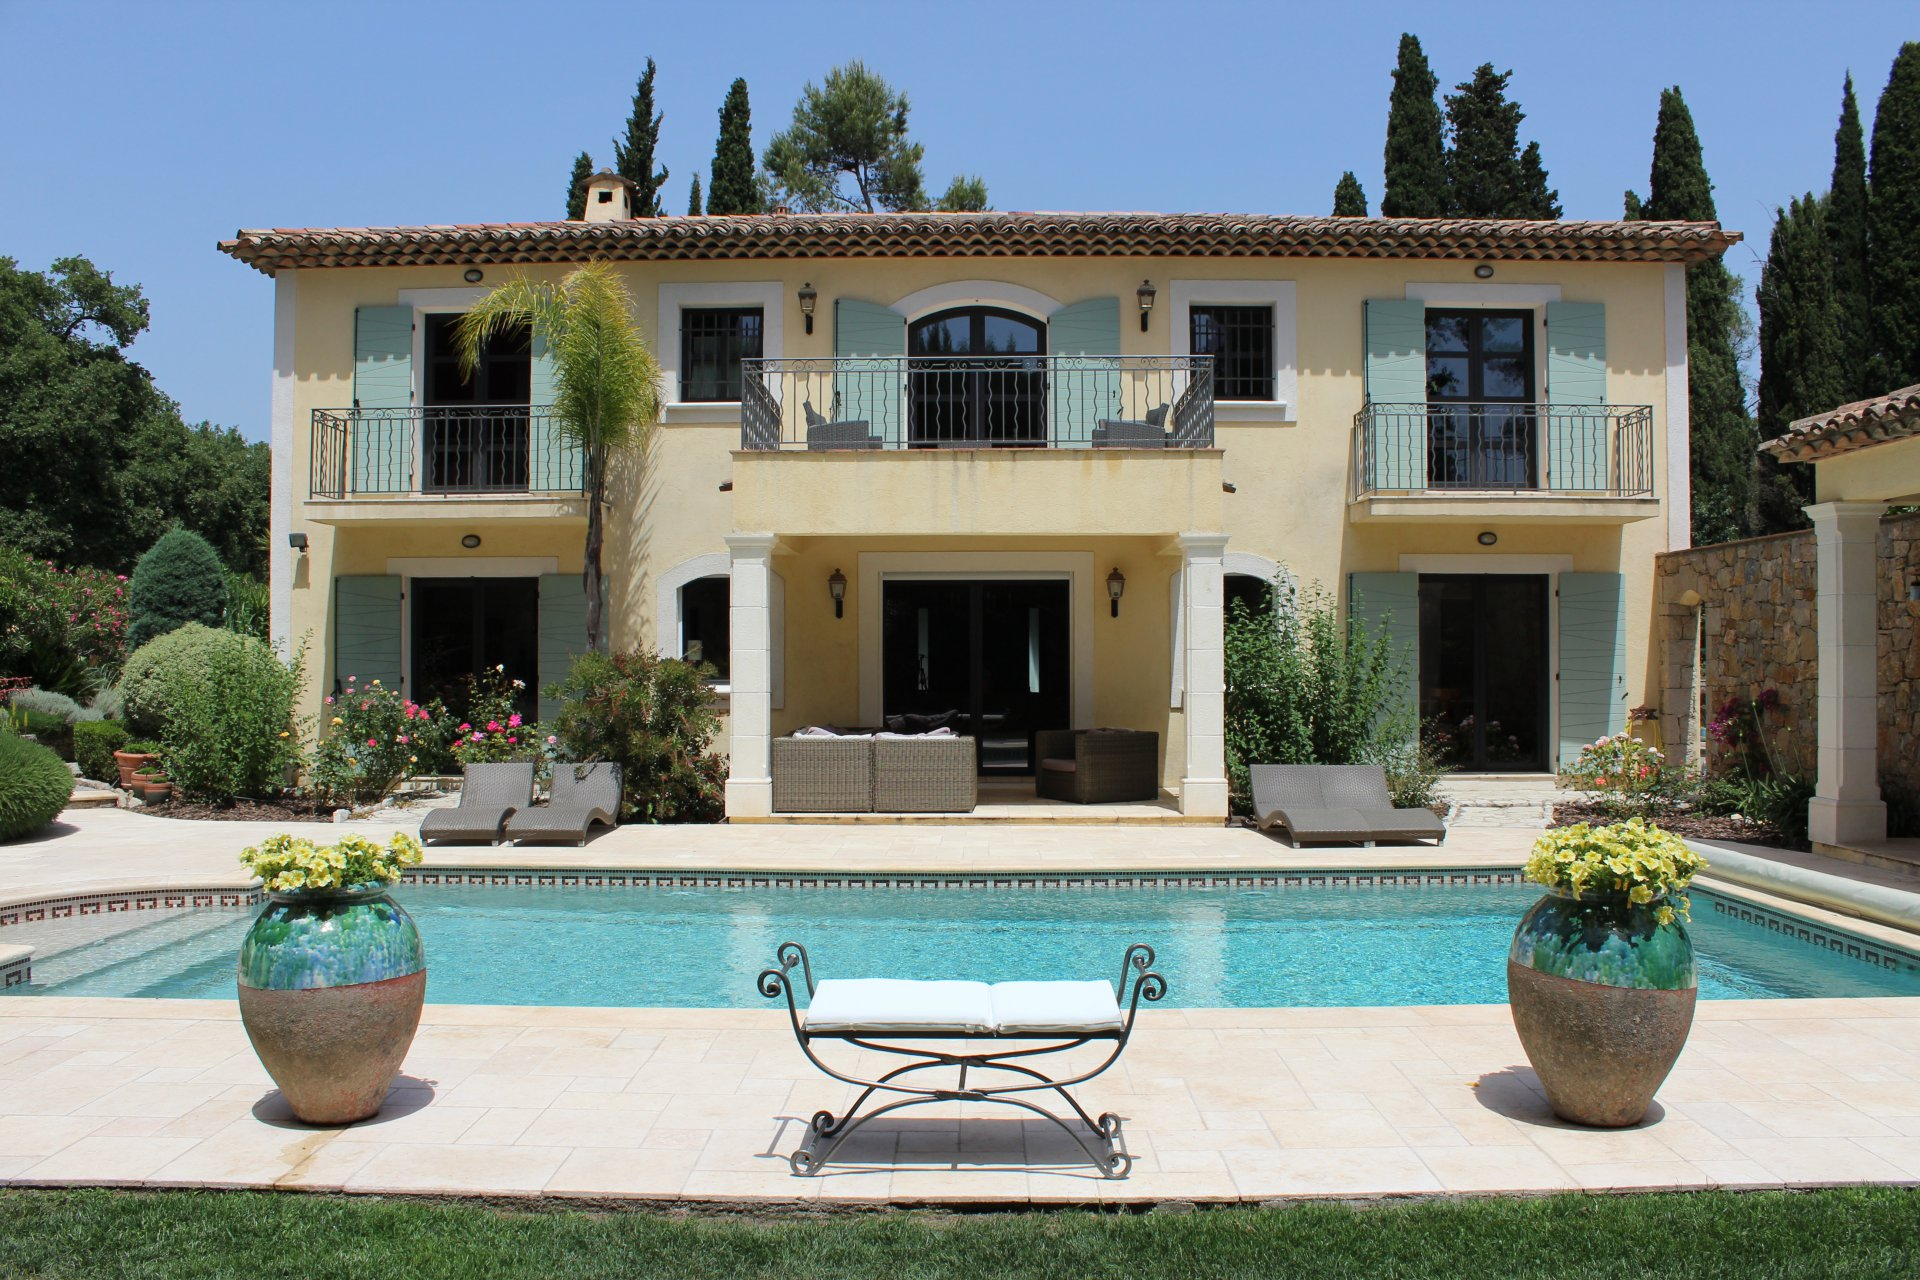 5/6 bedroomed turnkey home close to Mougins School